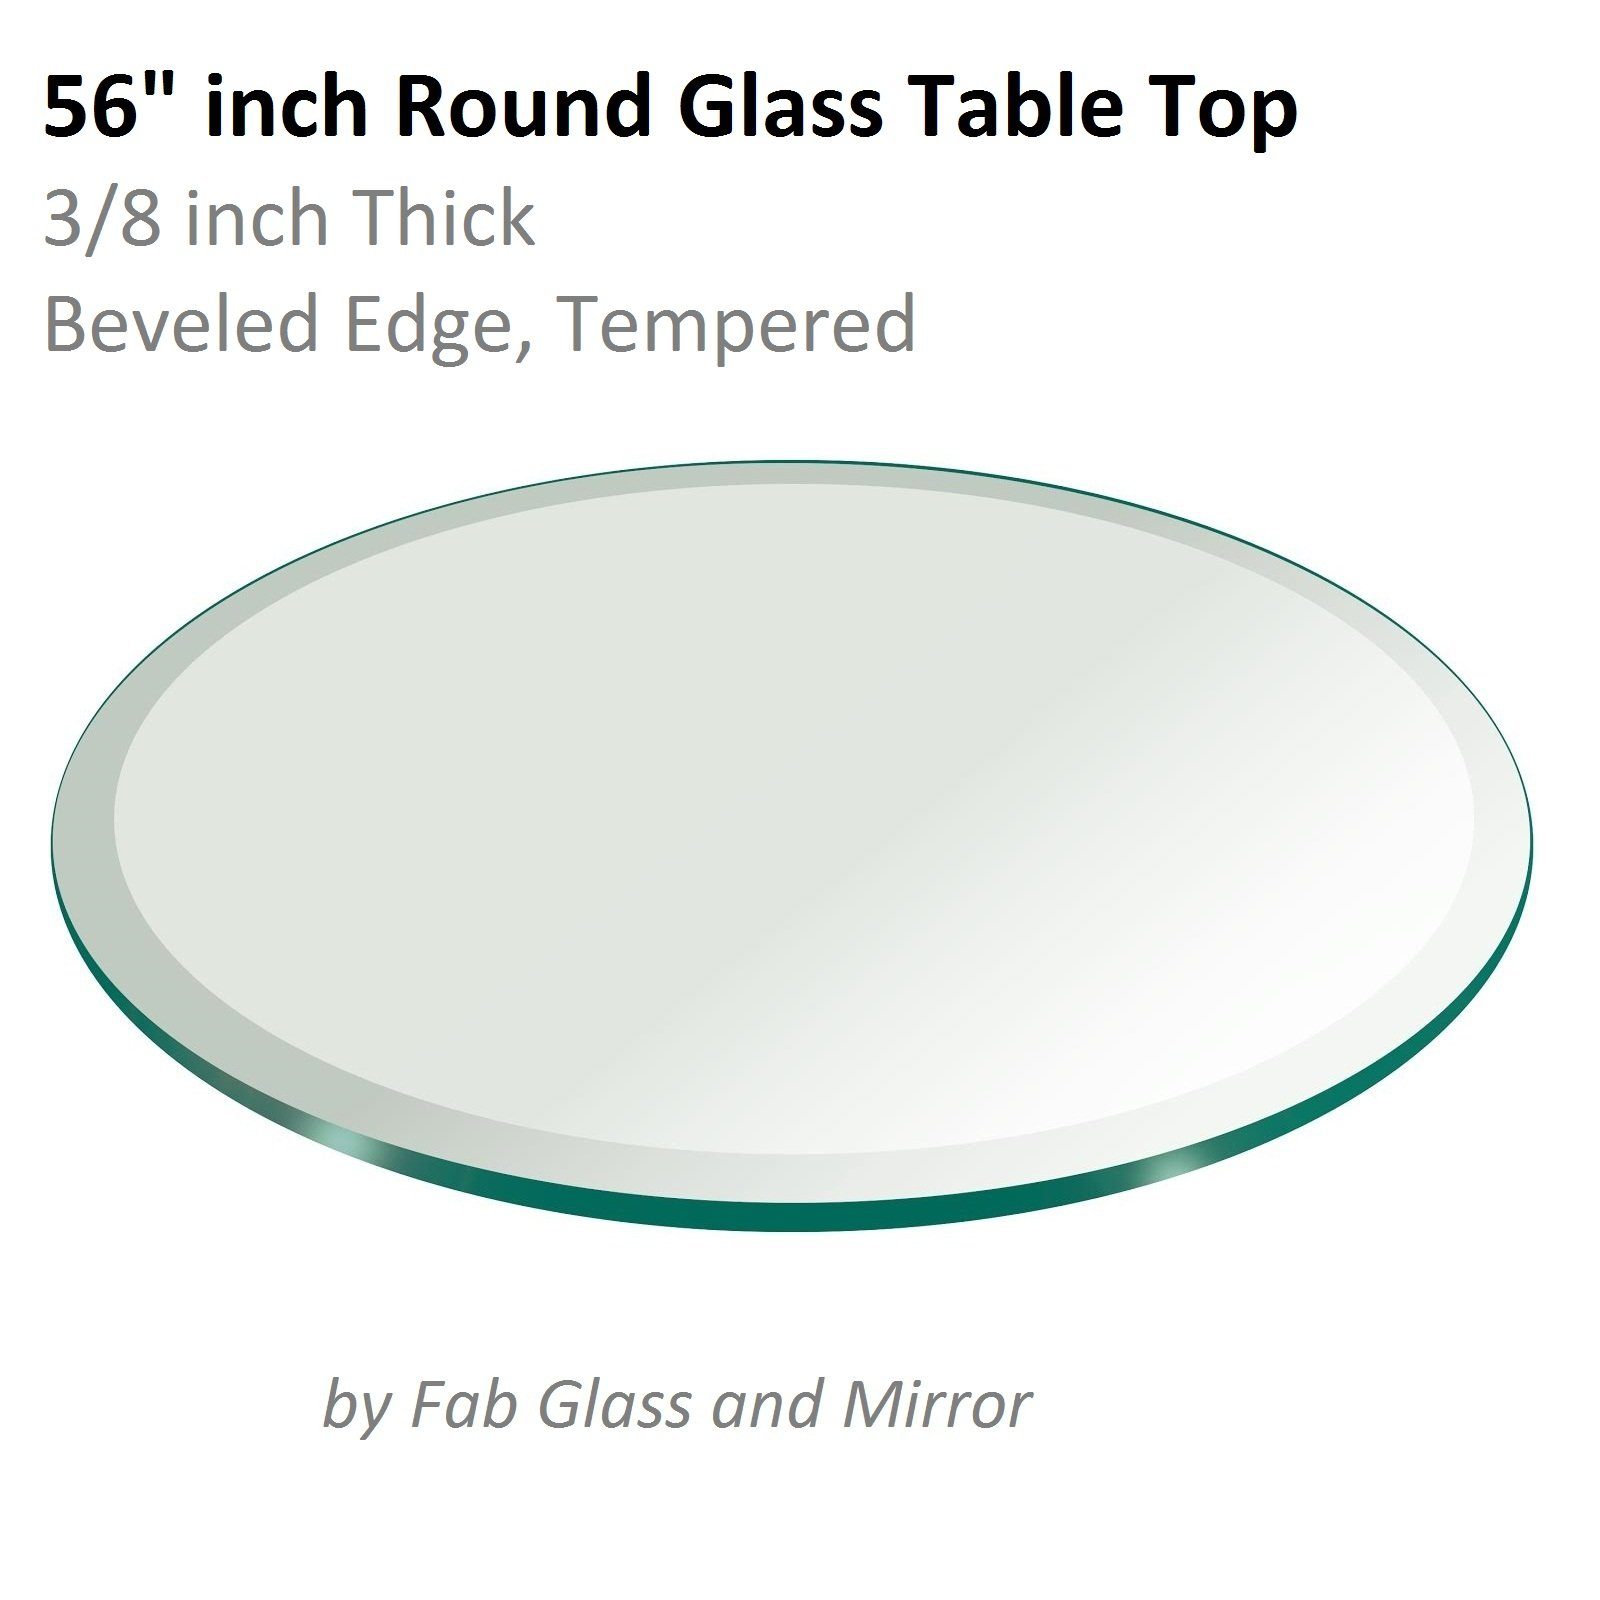 56'' Inch Round Glass Table Top 3/8'' Thick Tempered Beveled Edge by Fab Glass and Mirror